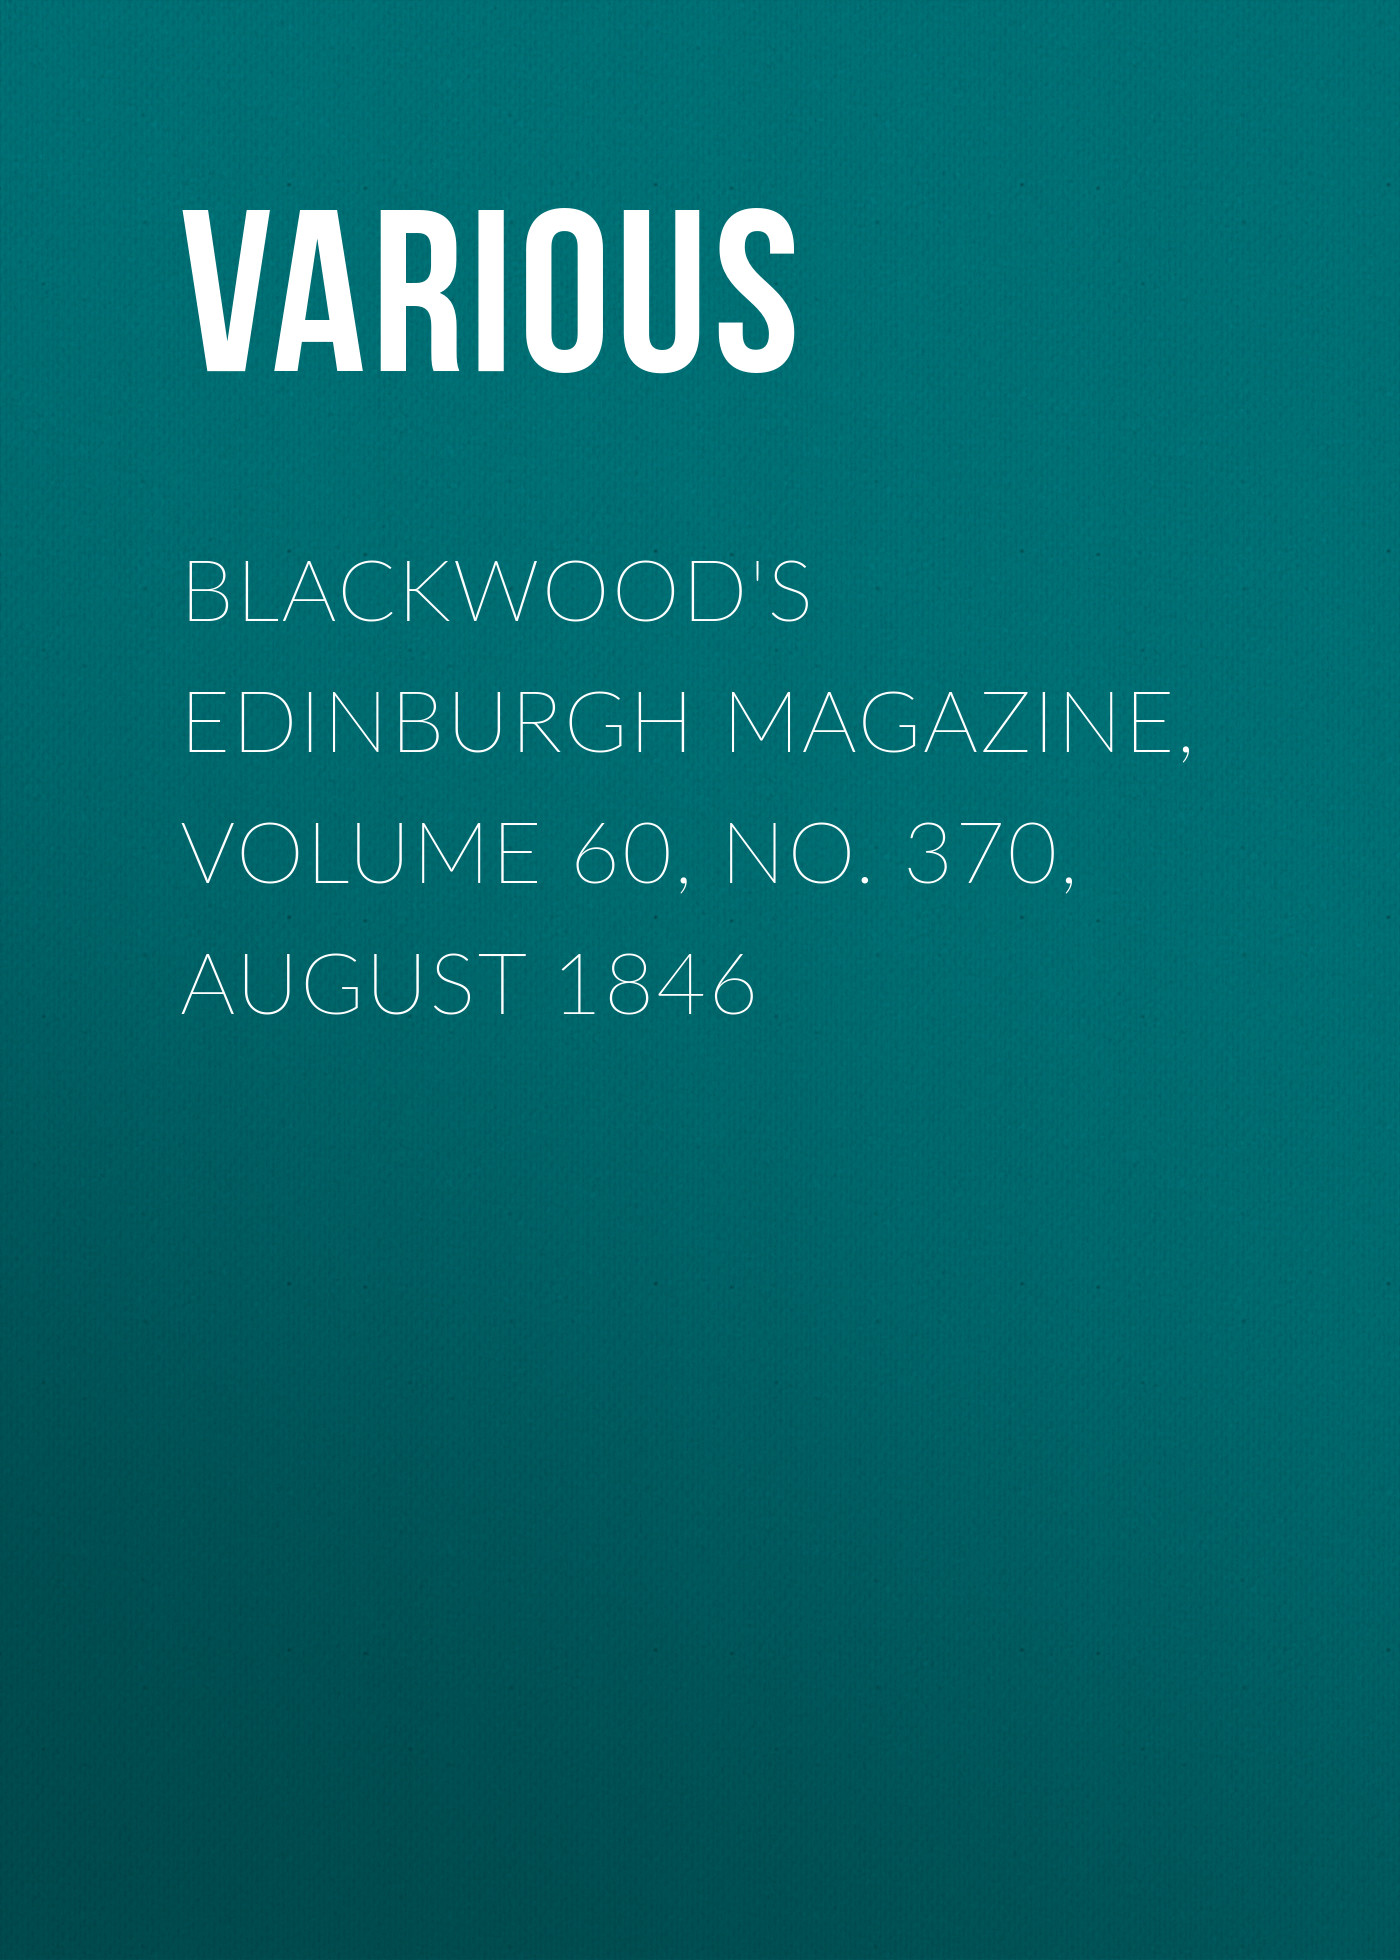 Various Blackwood's Edinburgh Magazine, Volume 60, No. 370, August 1846